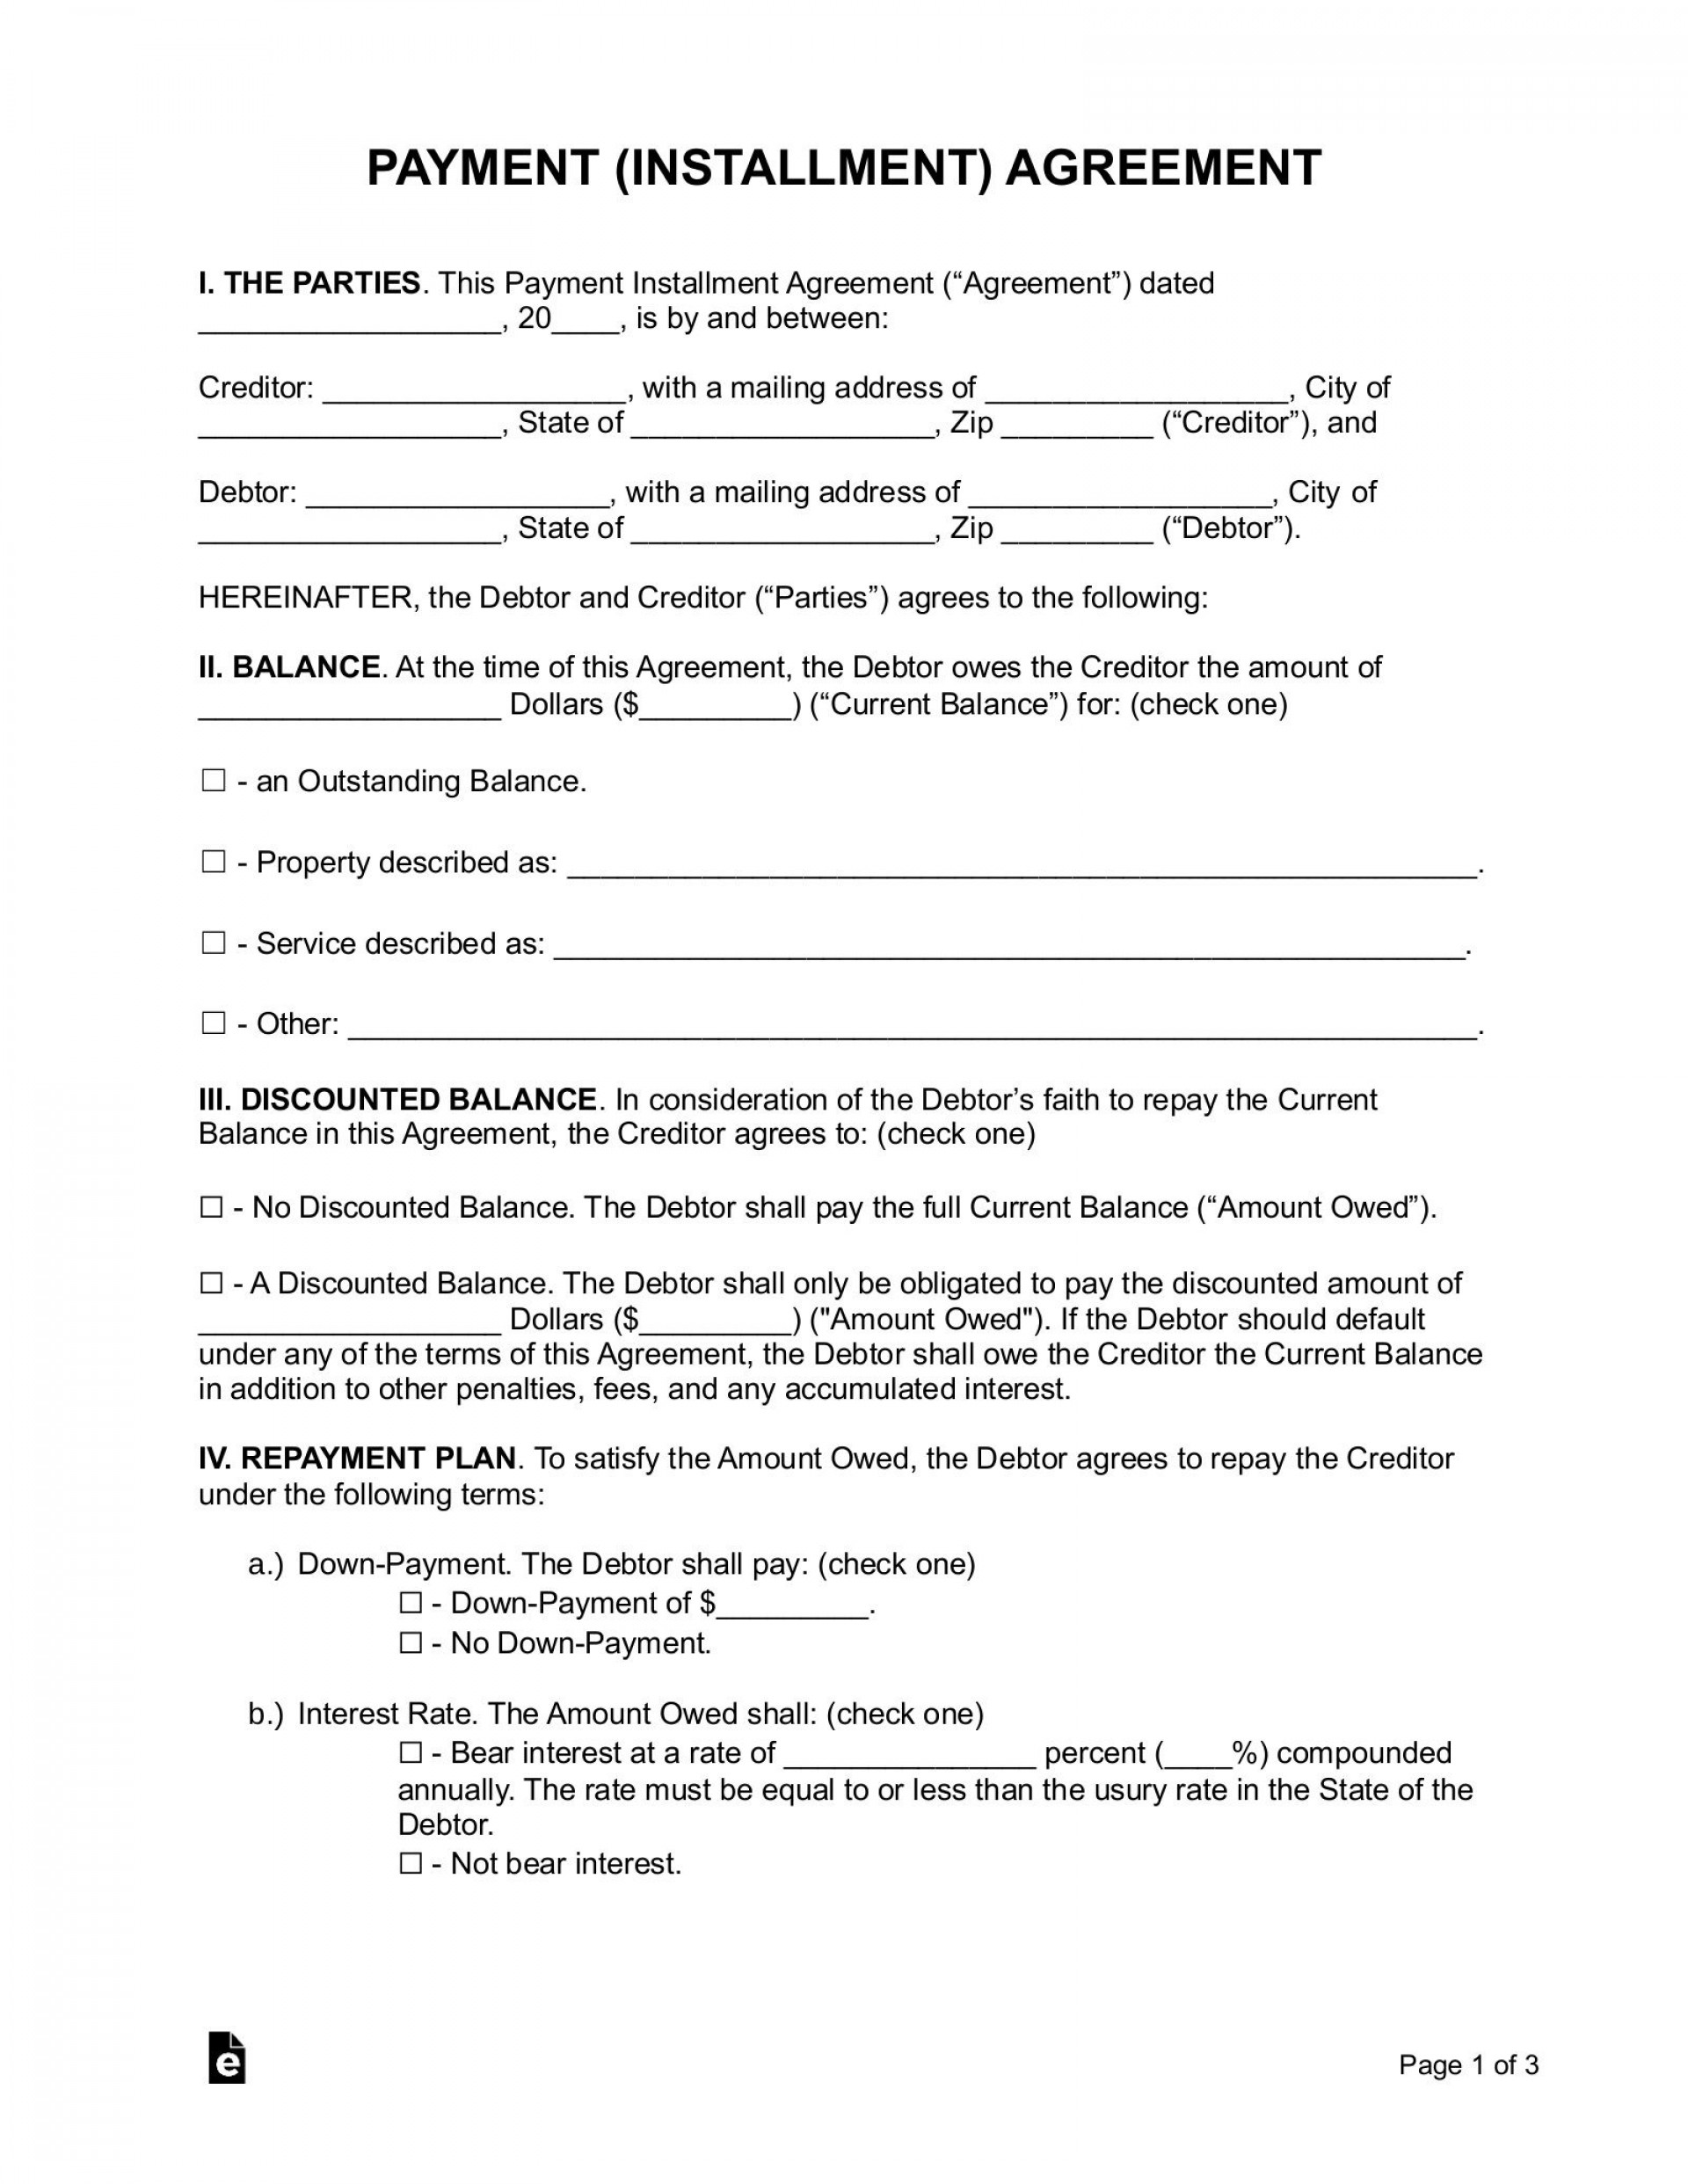 008 Archaicawful Installment Payment Contract Template High Definition  Car Agreement Simple Monthly1920